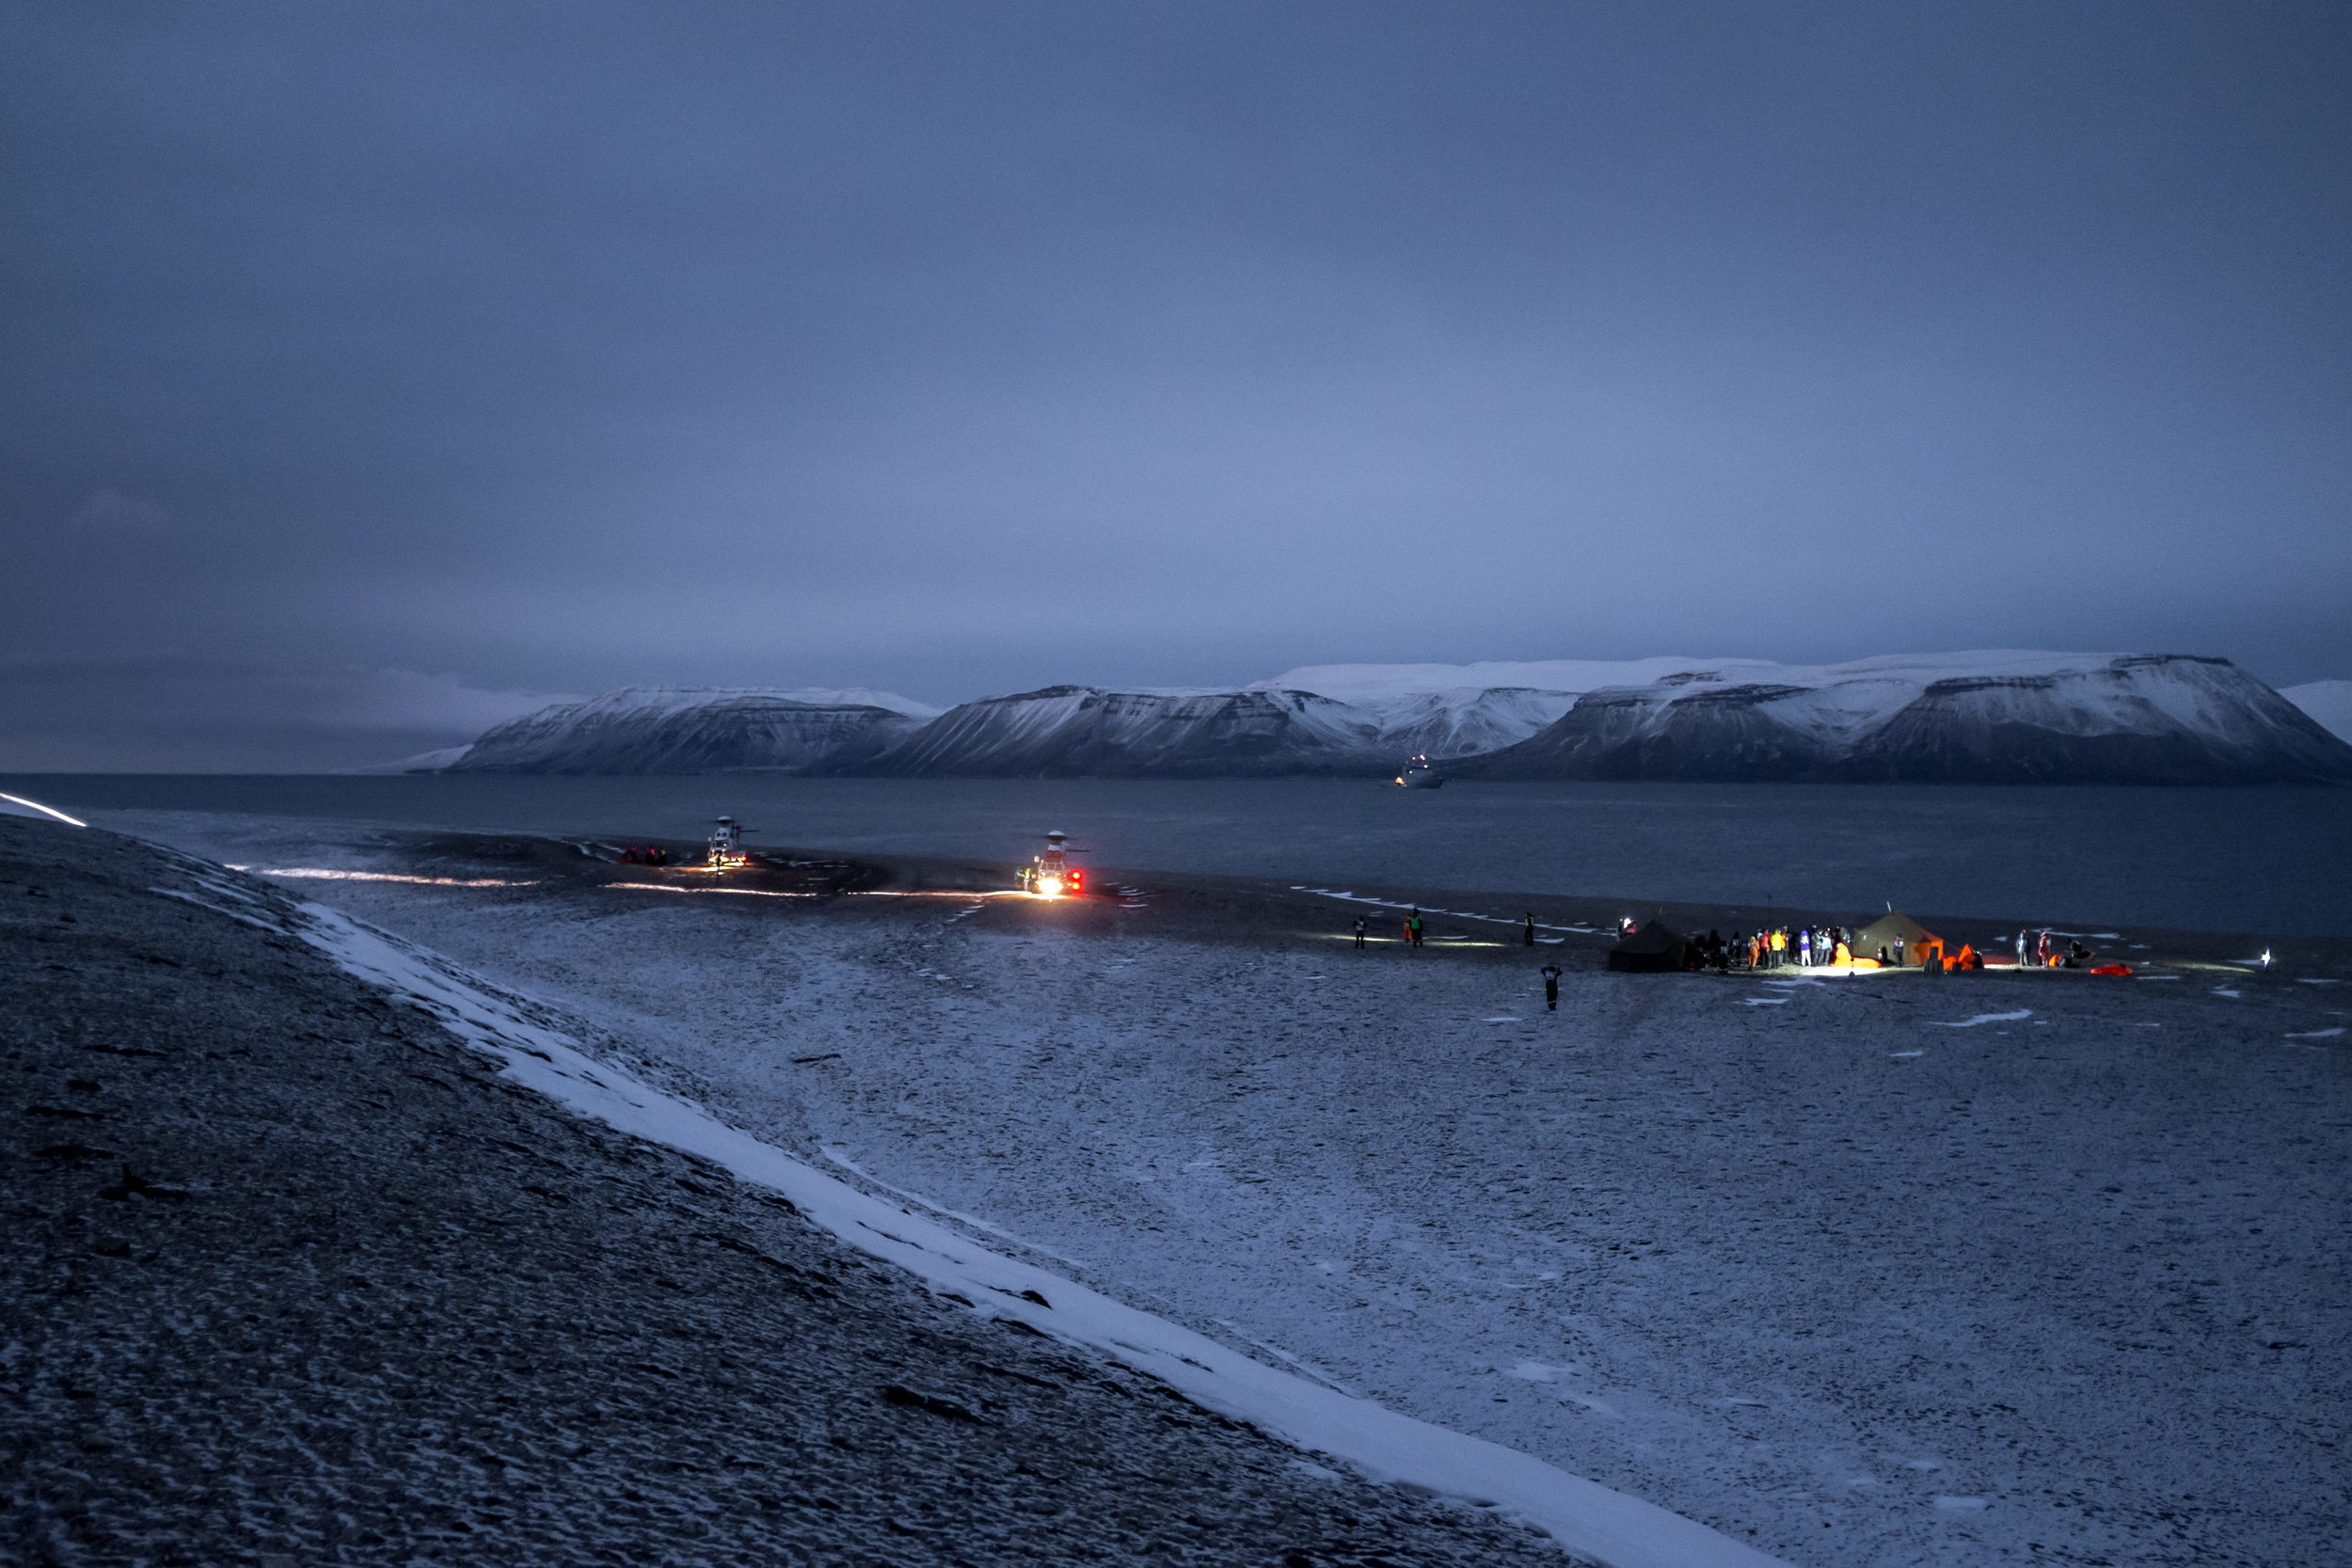 In November 2014, the biggest rescue exercise in Svalbard's history was undertaken. The scenario was evacuation of passengers from a sinking cruise ship in Billefjorden. Experiences from this exercise will be among the knowledge incorporated in the new Arctic Safety Centre. Photo: Stefan Claes / UNIS